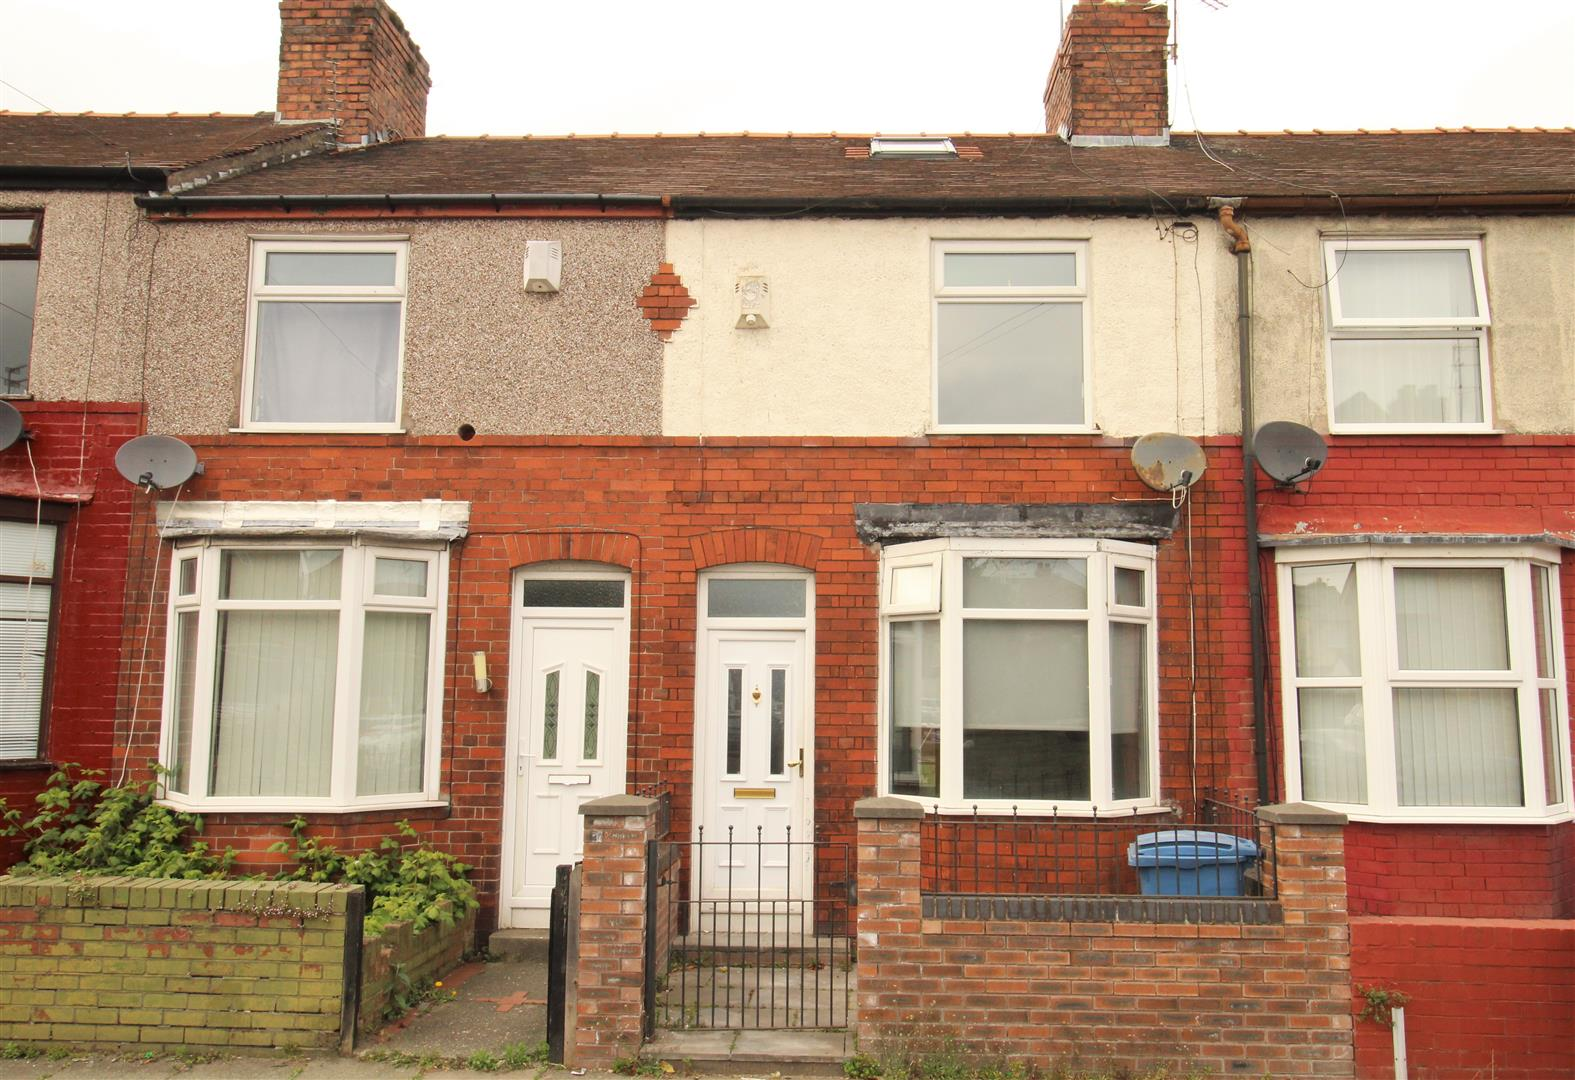 2 Bedrooms, House - Terraced, Albany Road, Aintree, Liverpool